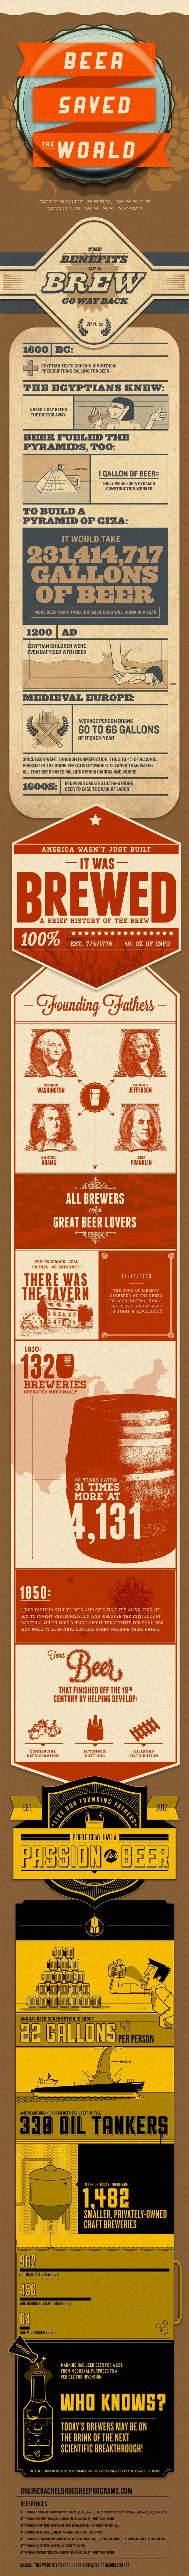 Beer saved the world.